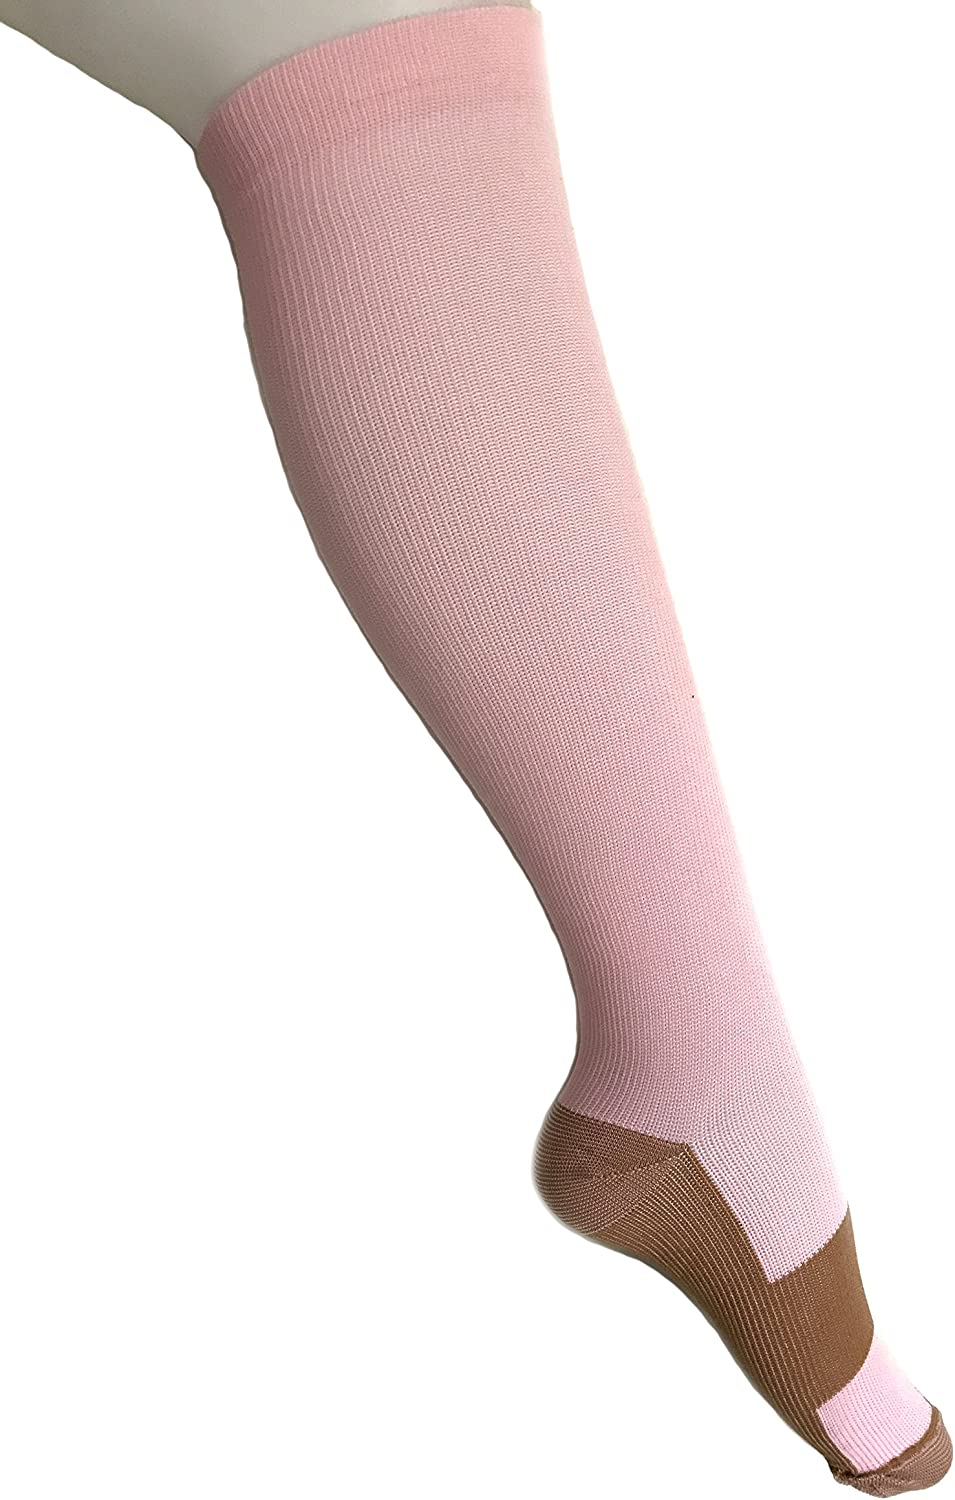 Copper Compression Socks For Men and Women 15-20mmhg Knee High